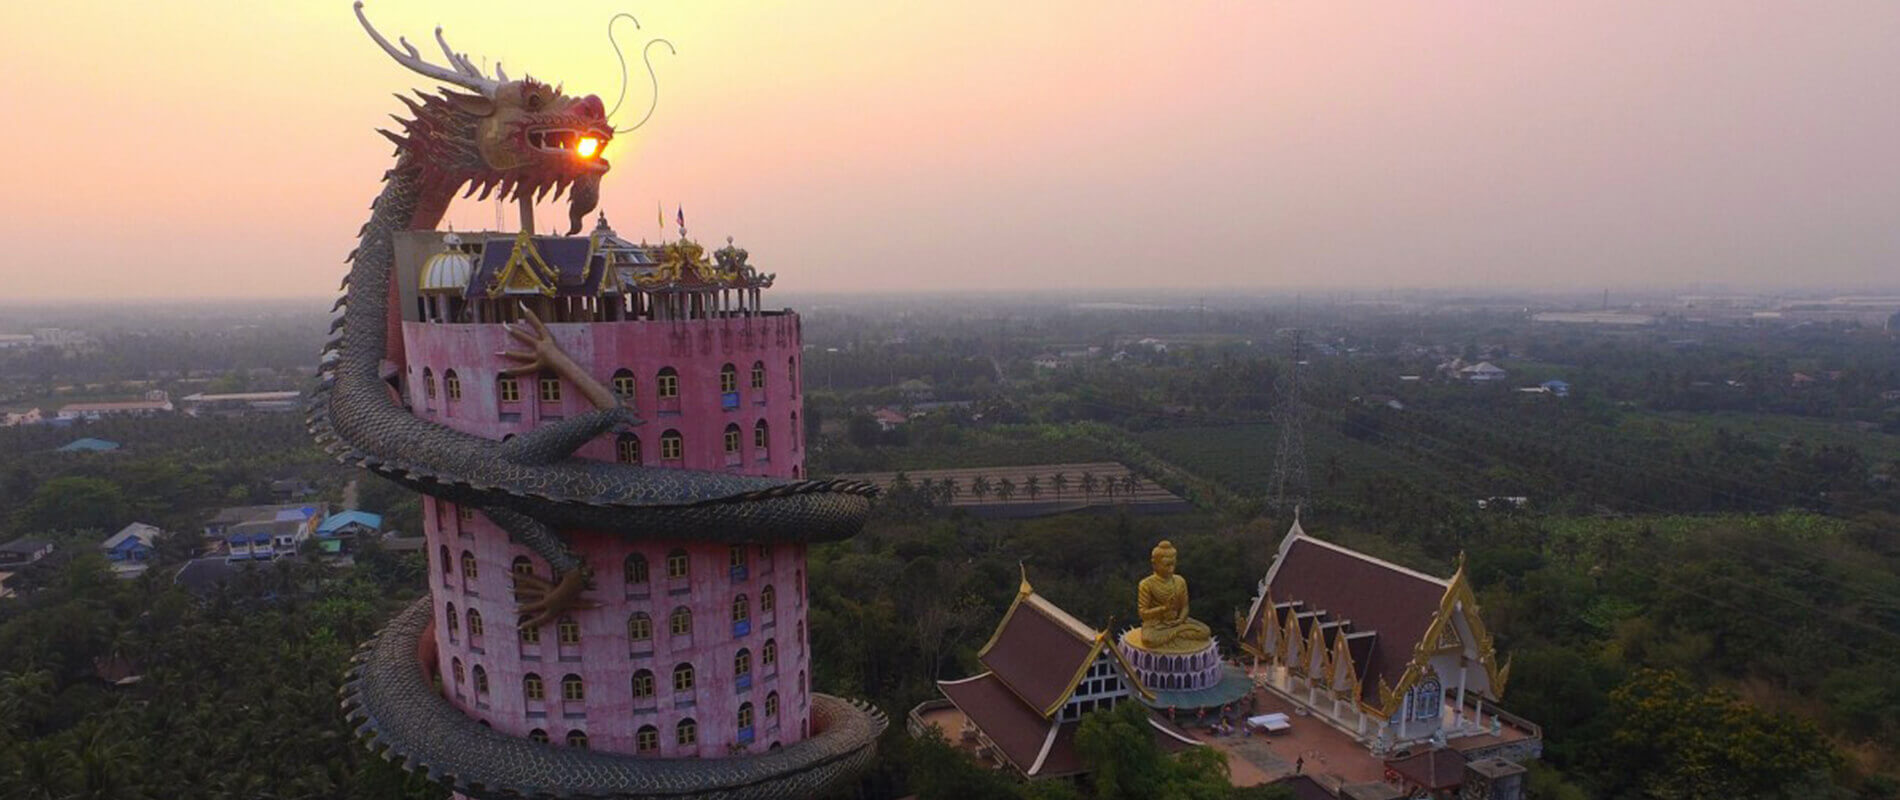 The Temple of Wat Samphran, the Tower Wrapped in the Coils of a Dragon